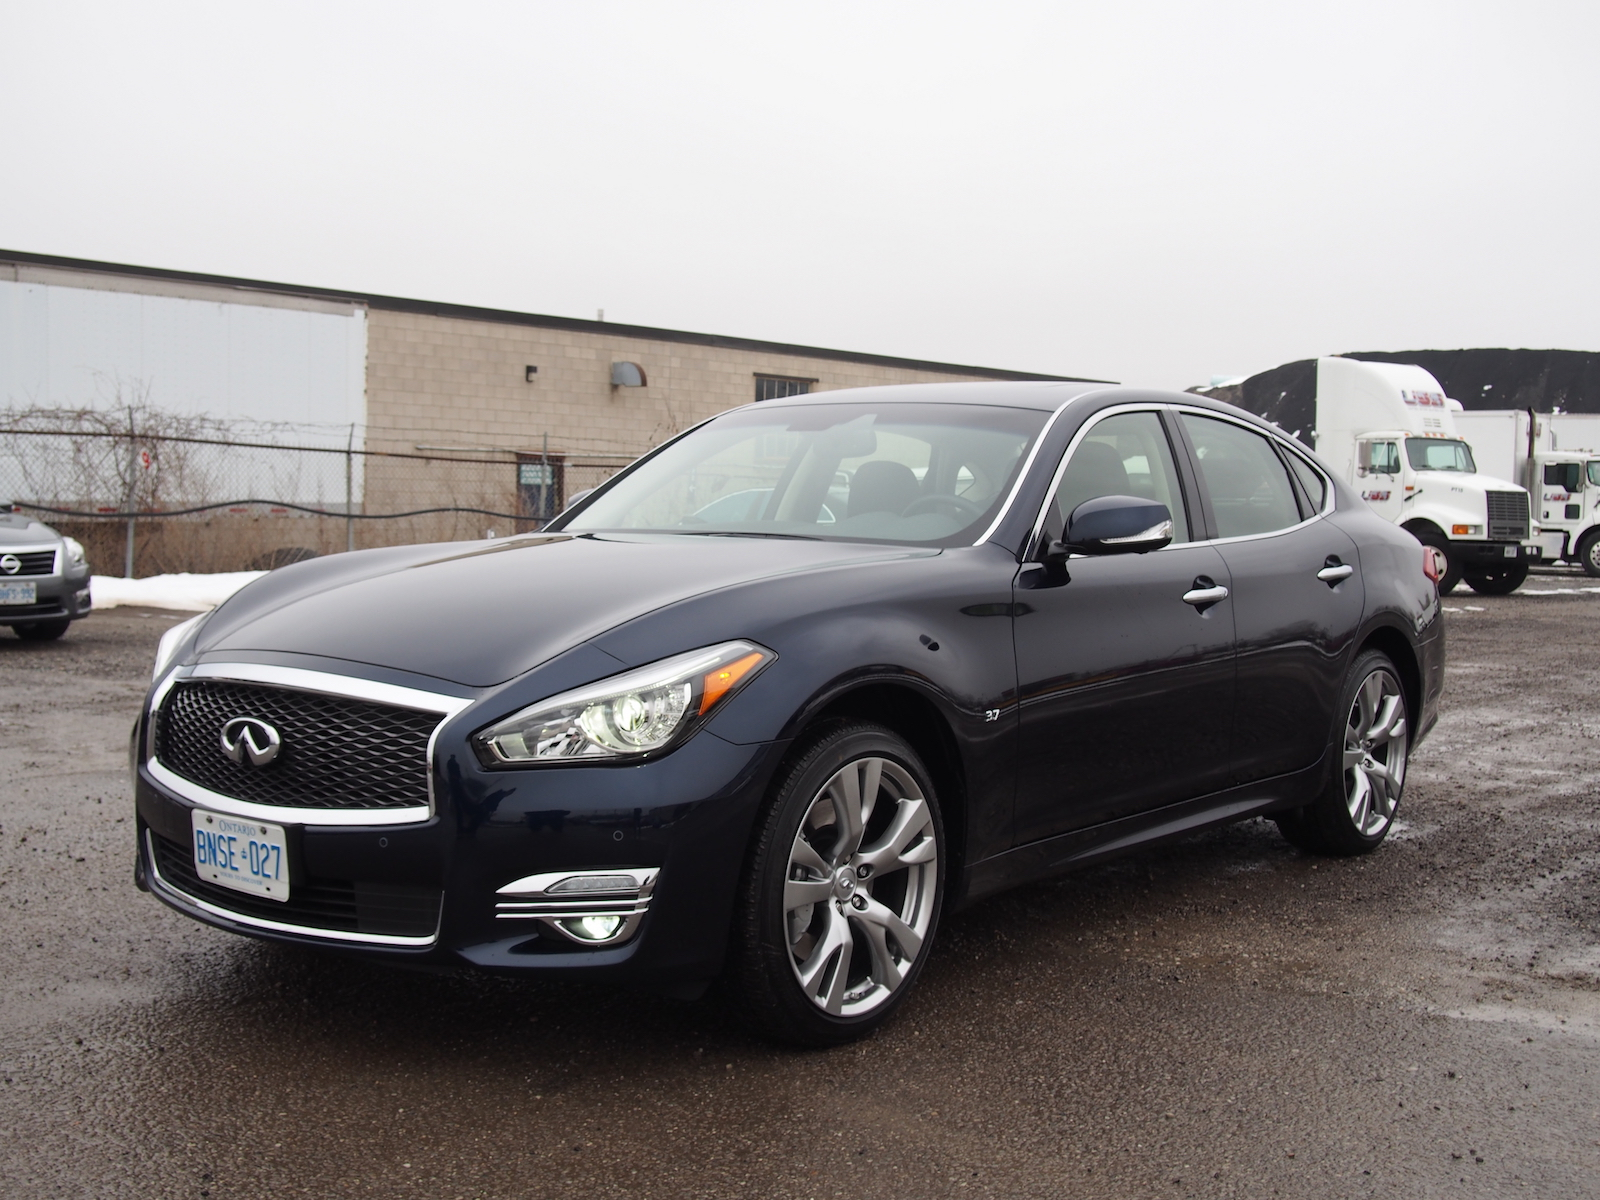 review 2015 infiniti q70 3 7 awd canadian auto review. Black Bedroom Furniture Sets. Home Design Ideas